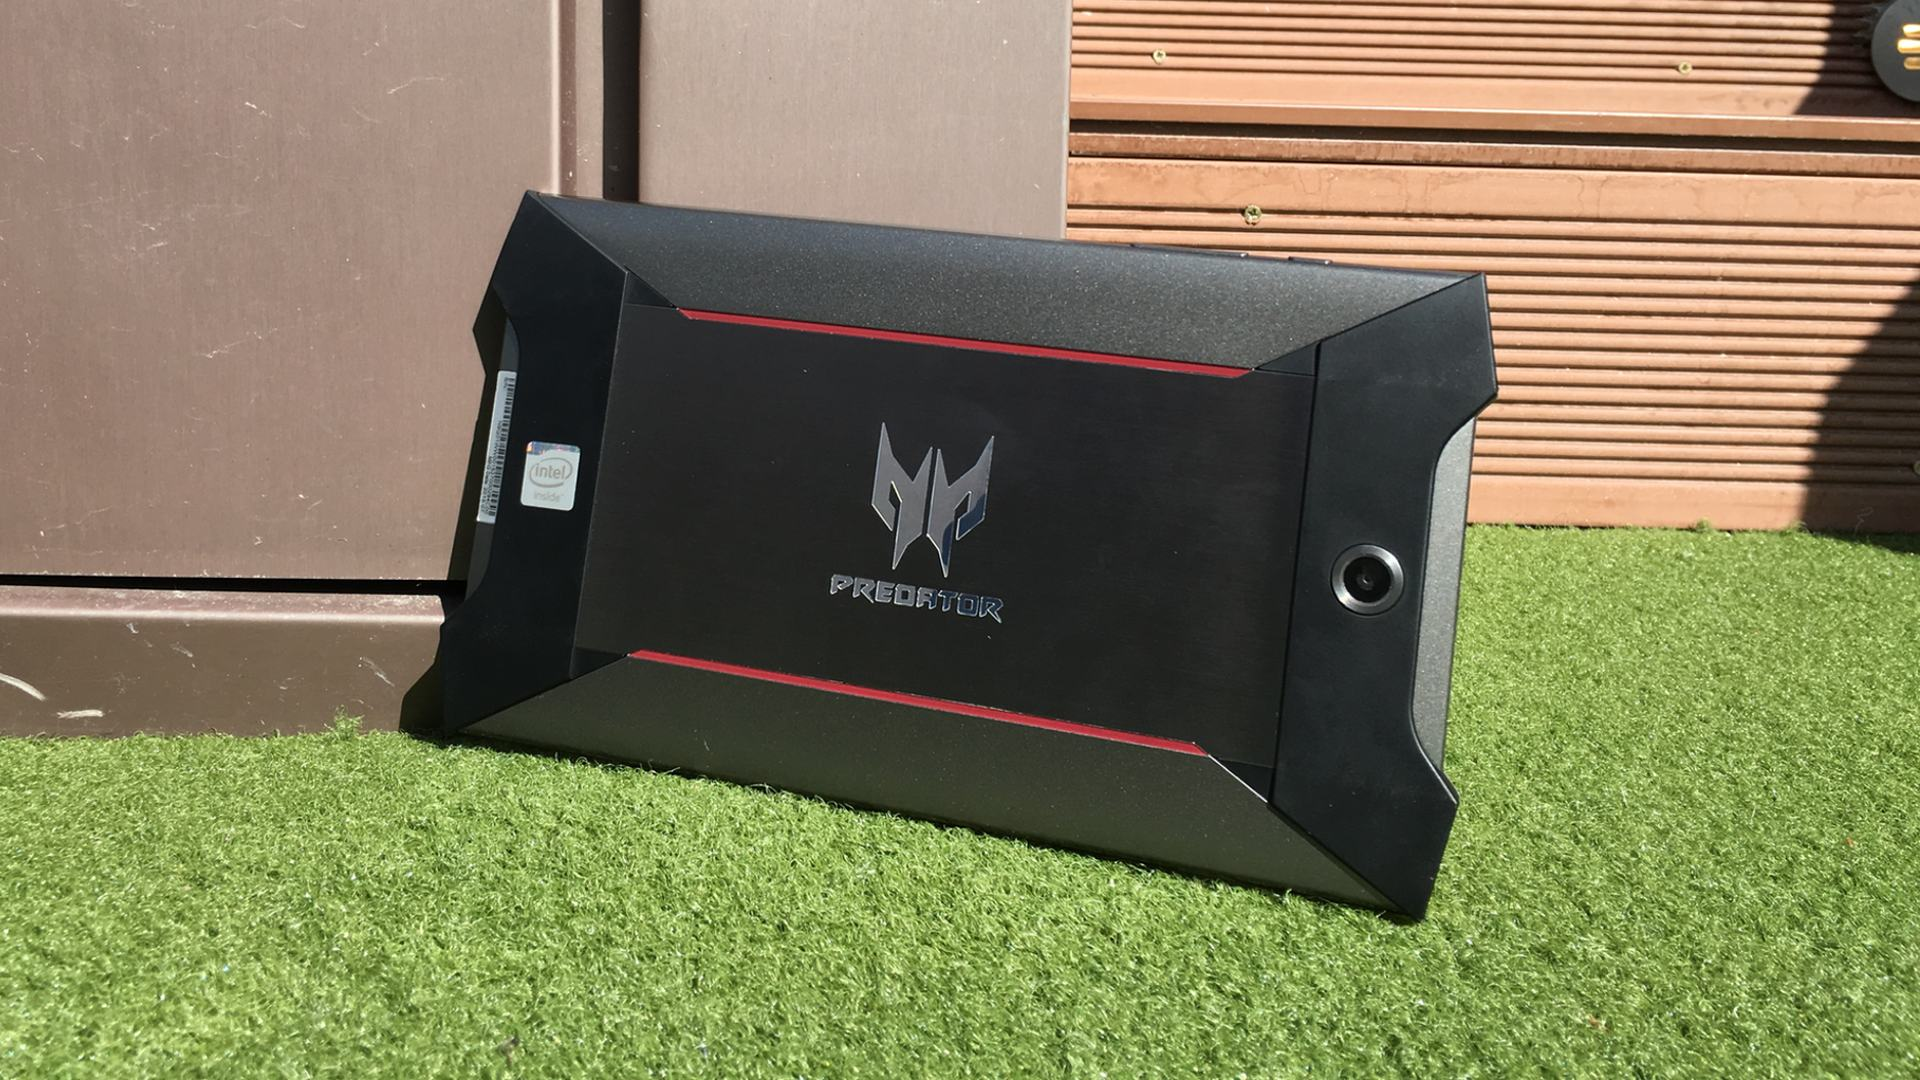 Acer-Predator-8-android-gaming-tablet